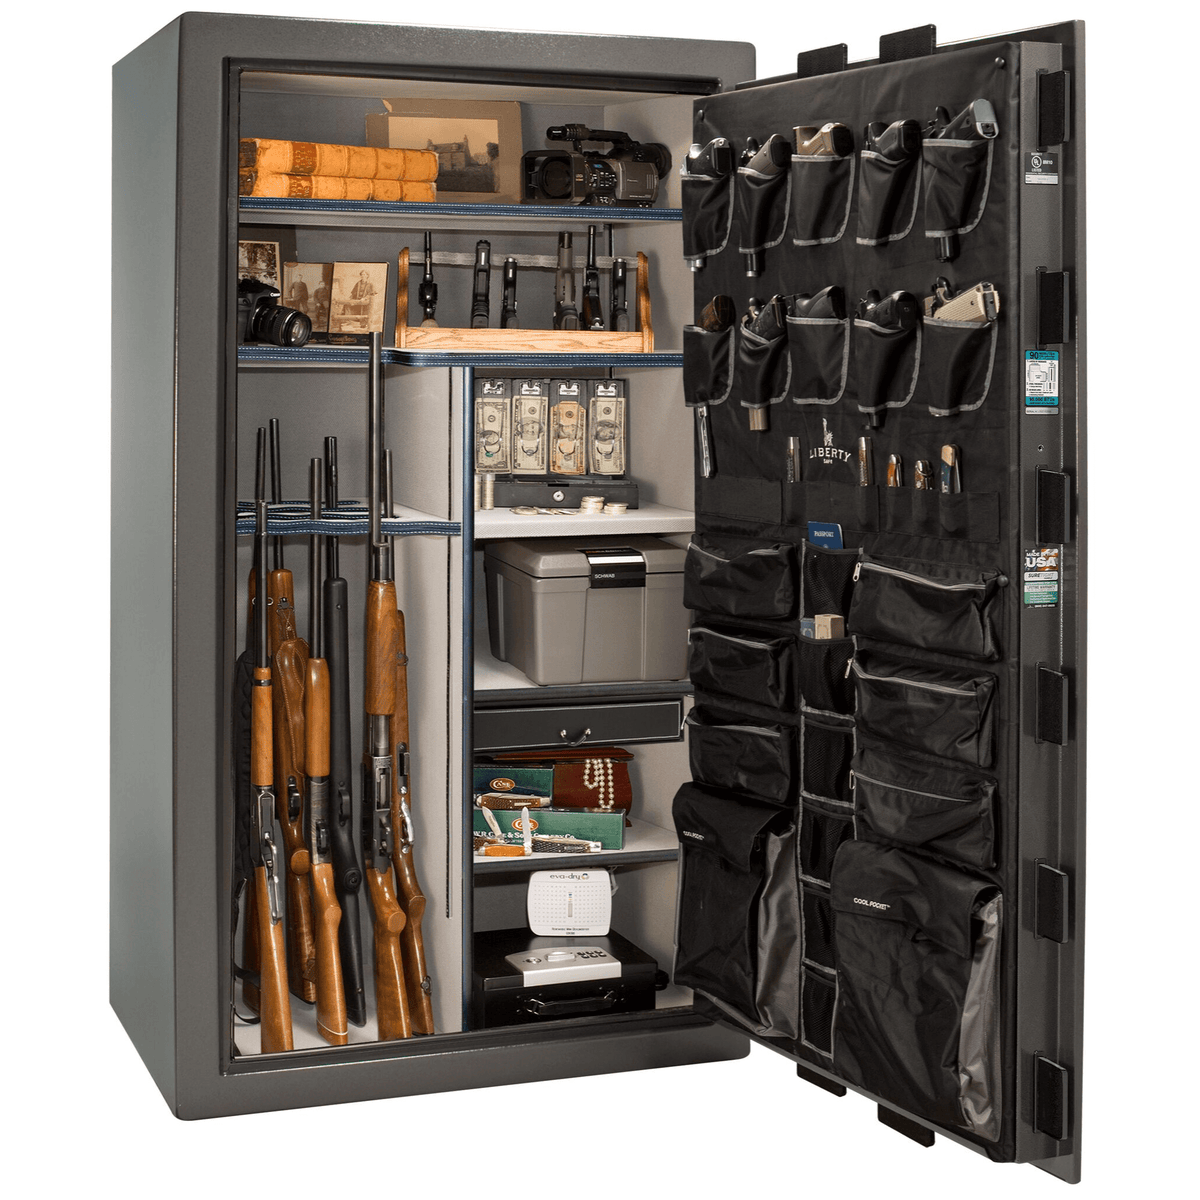 Lincoln Series | Level 5 Security | 110 Minute Fire Protection